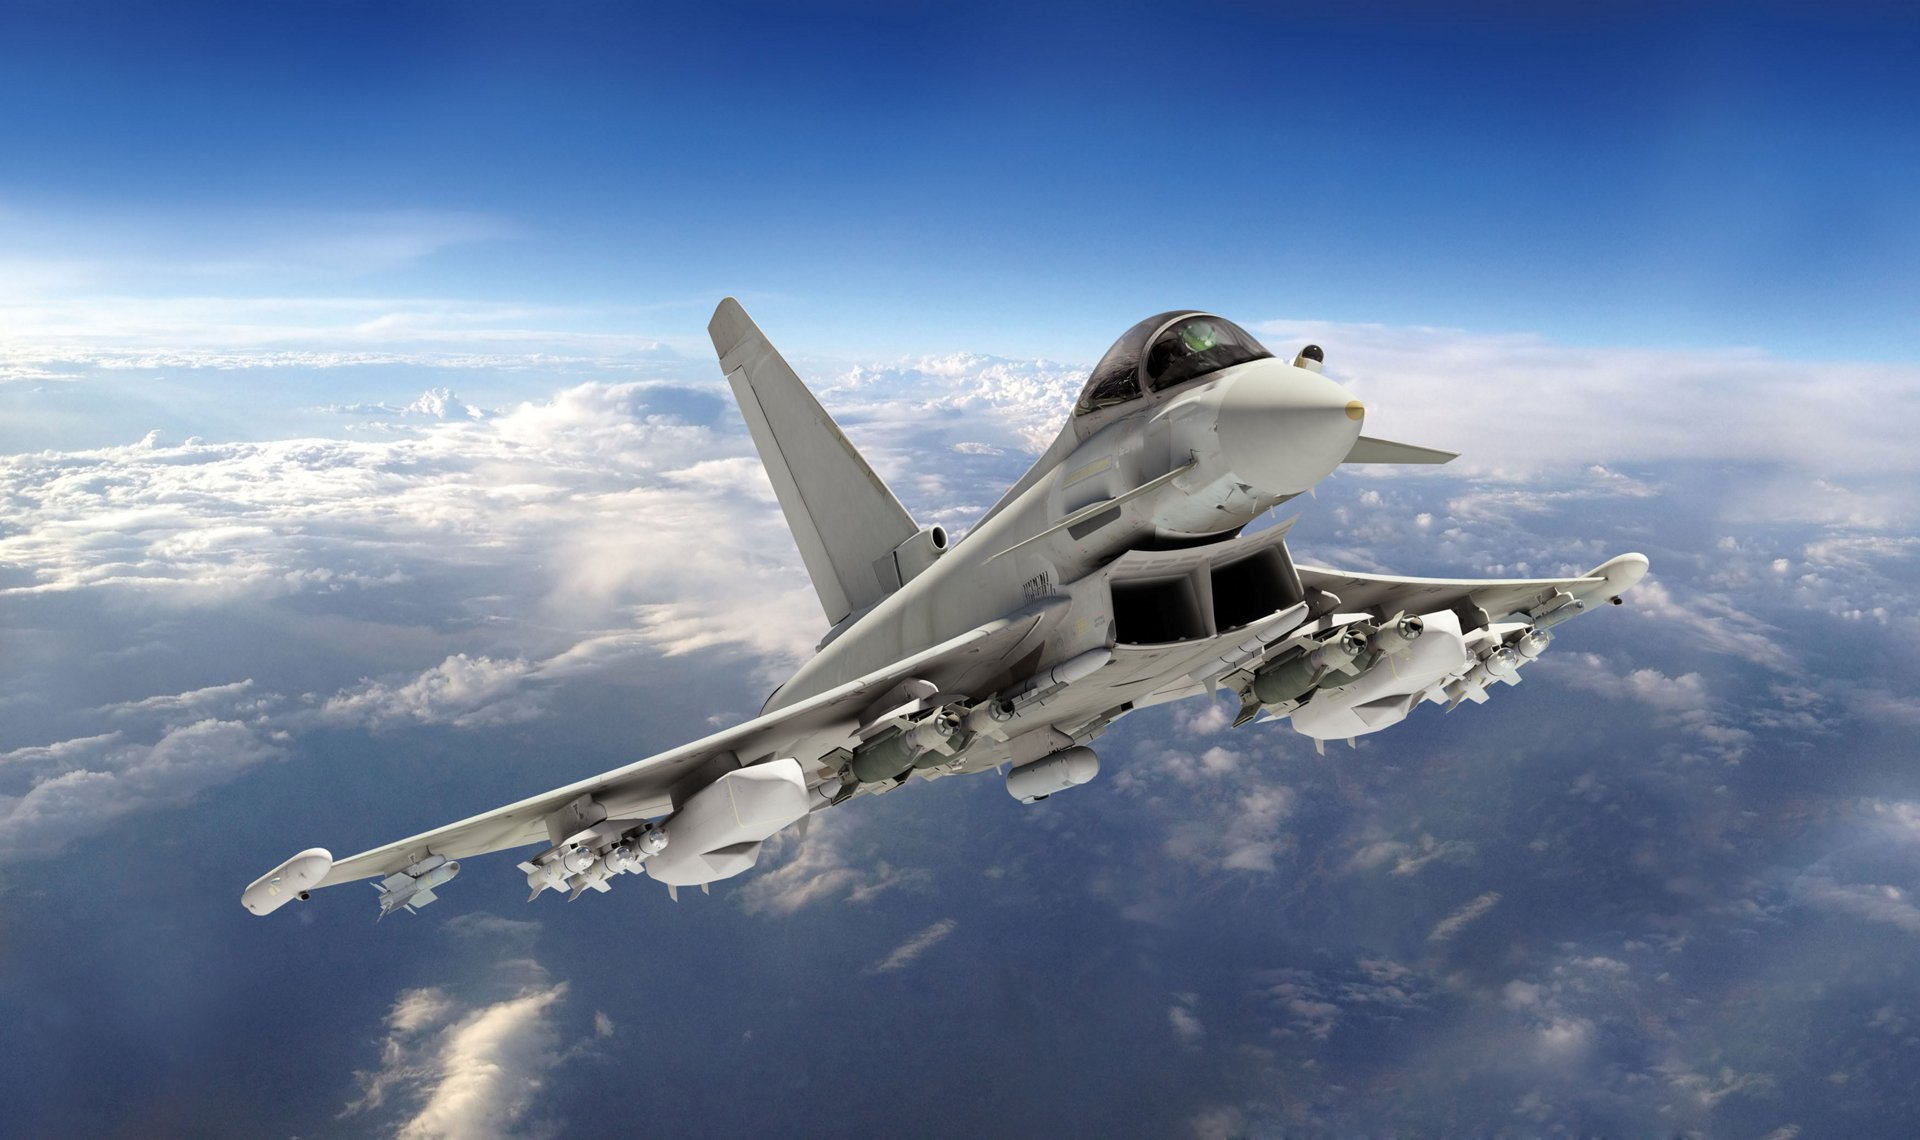 Eurofighter Typhoon A Powerful Force Multiplier